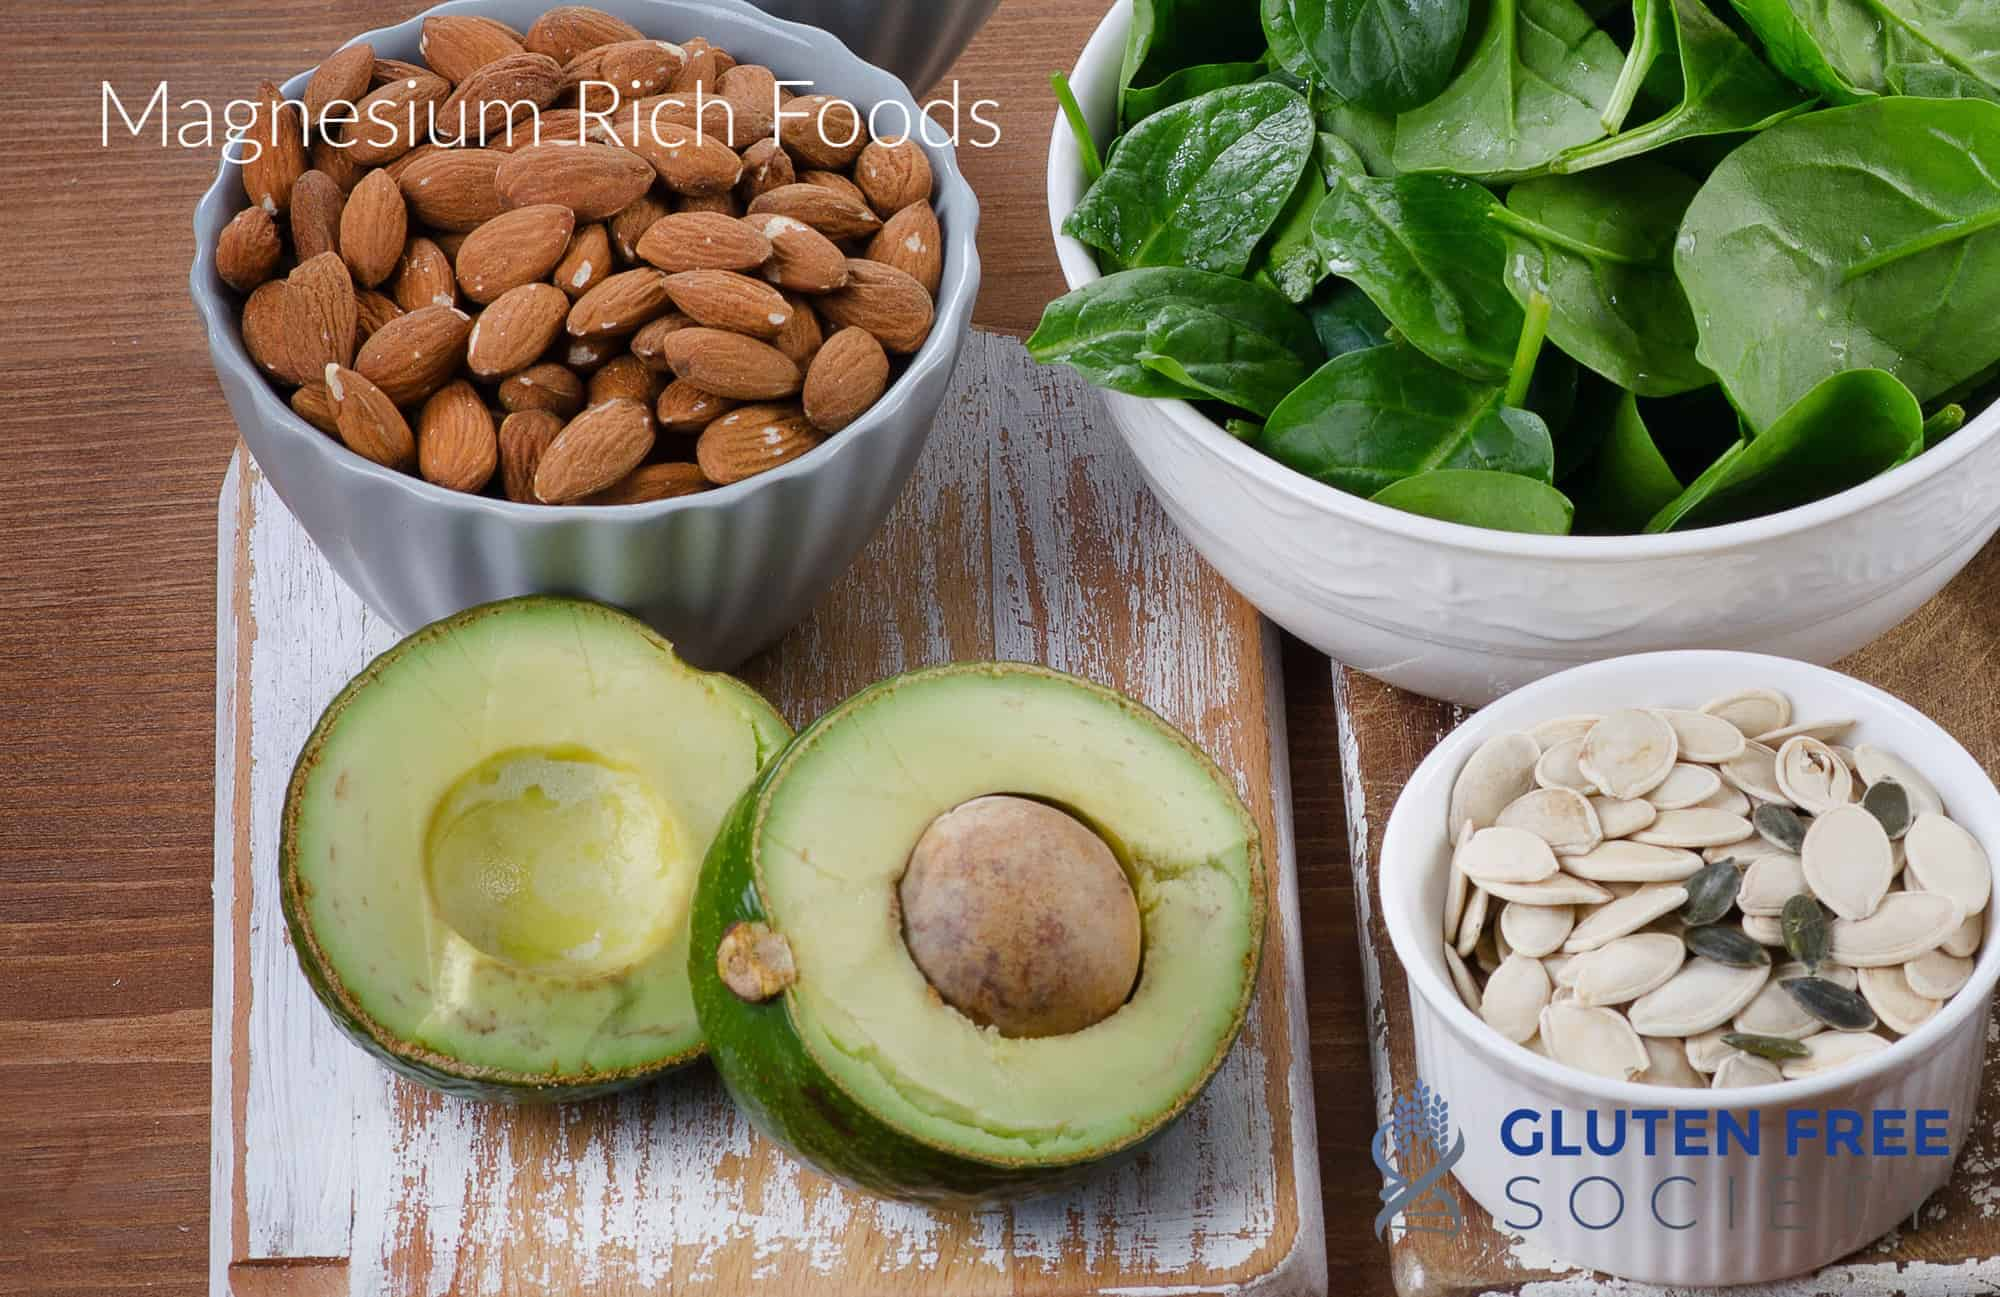 Magnesium rich foods - Everything You Need to Know About Magnesium